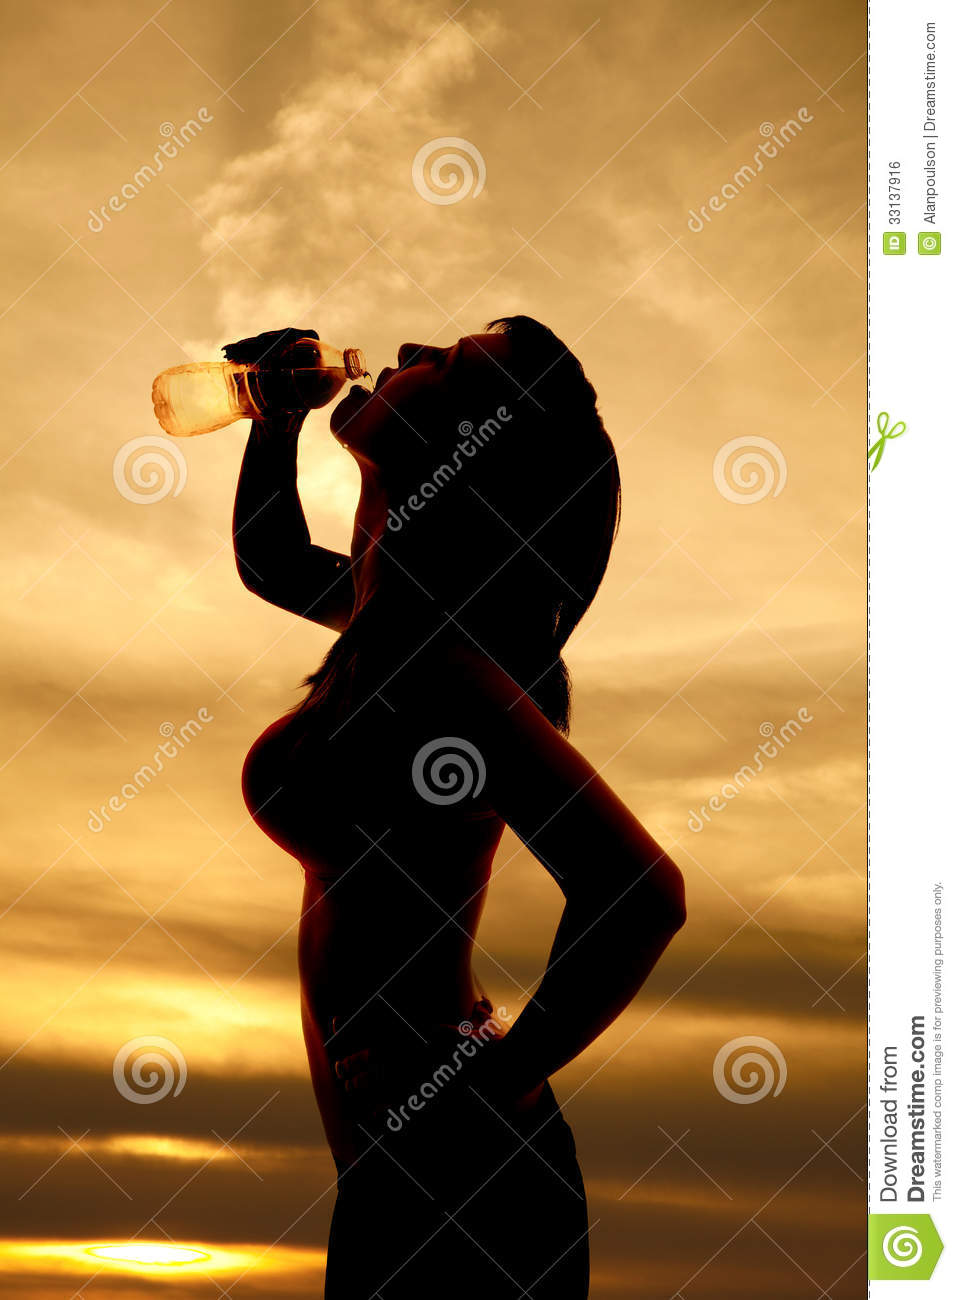 silhouette woman in sports bra drink water royalty free stock image